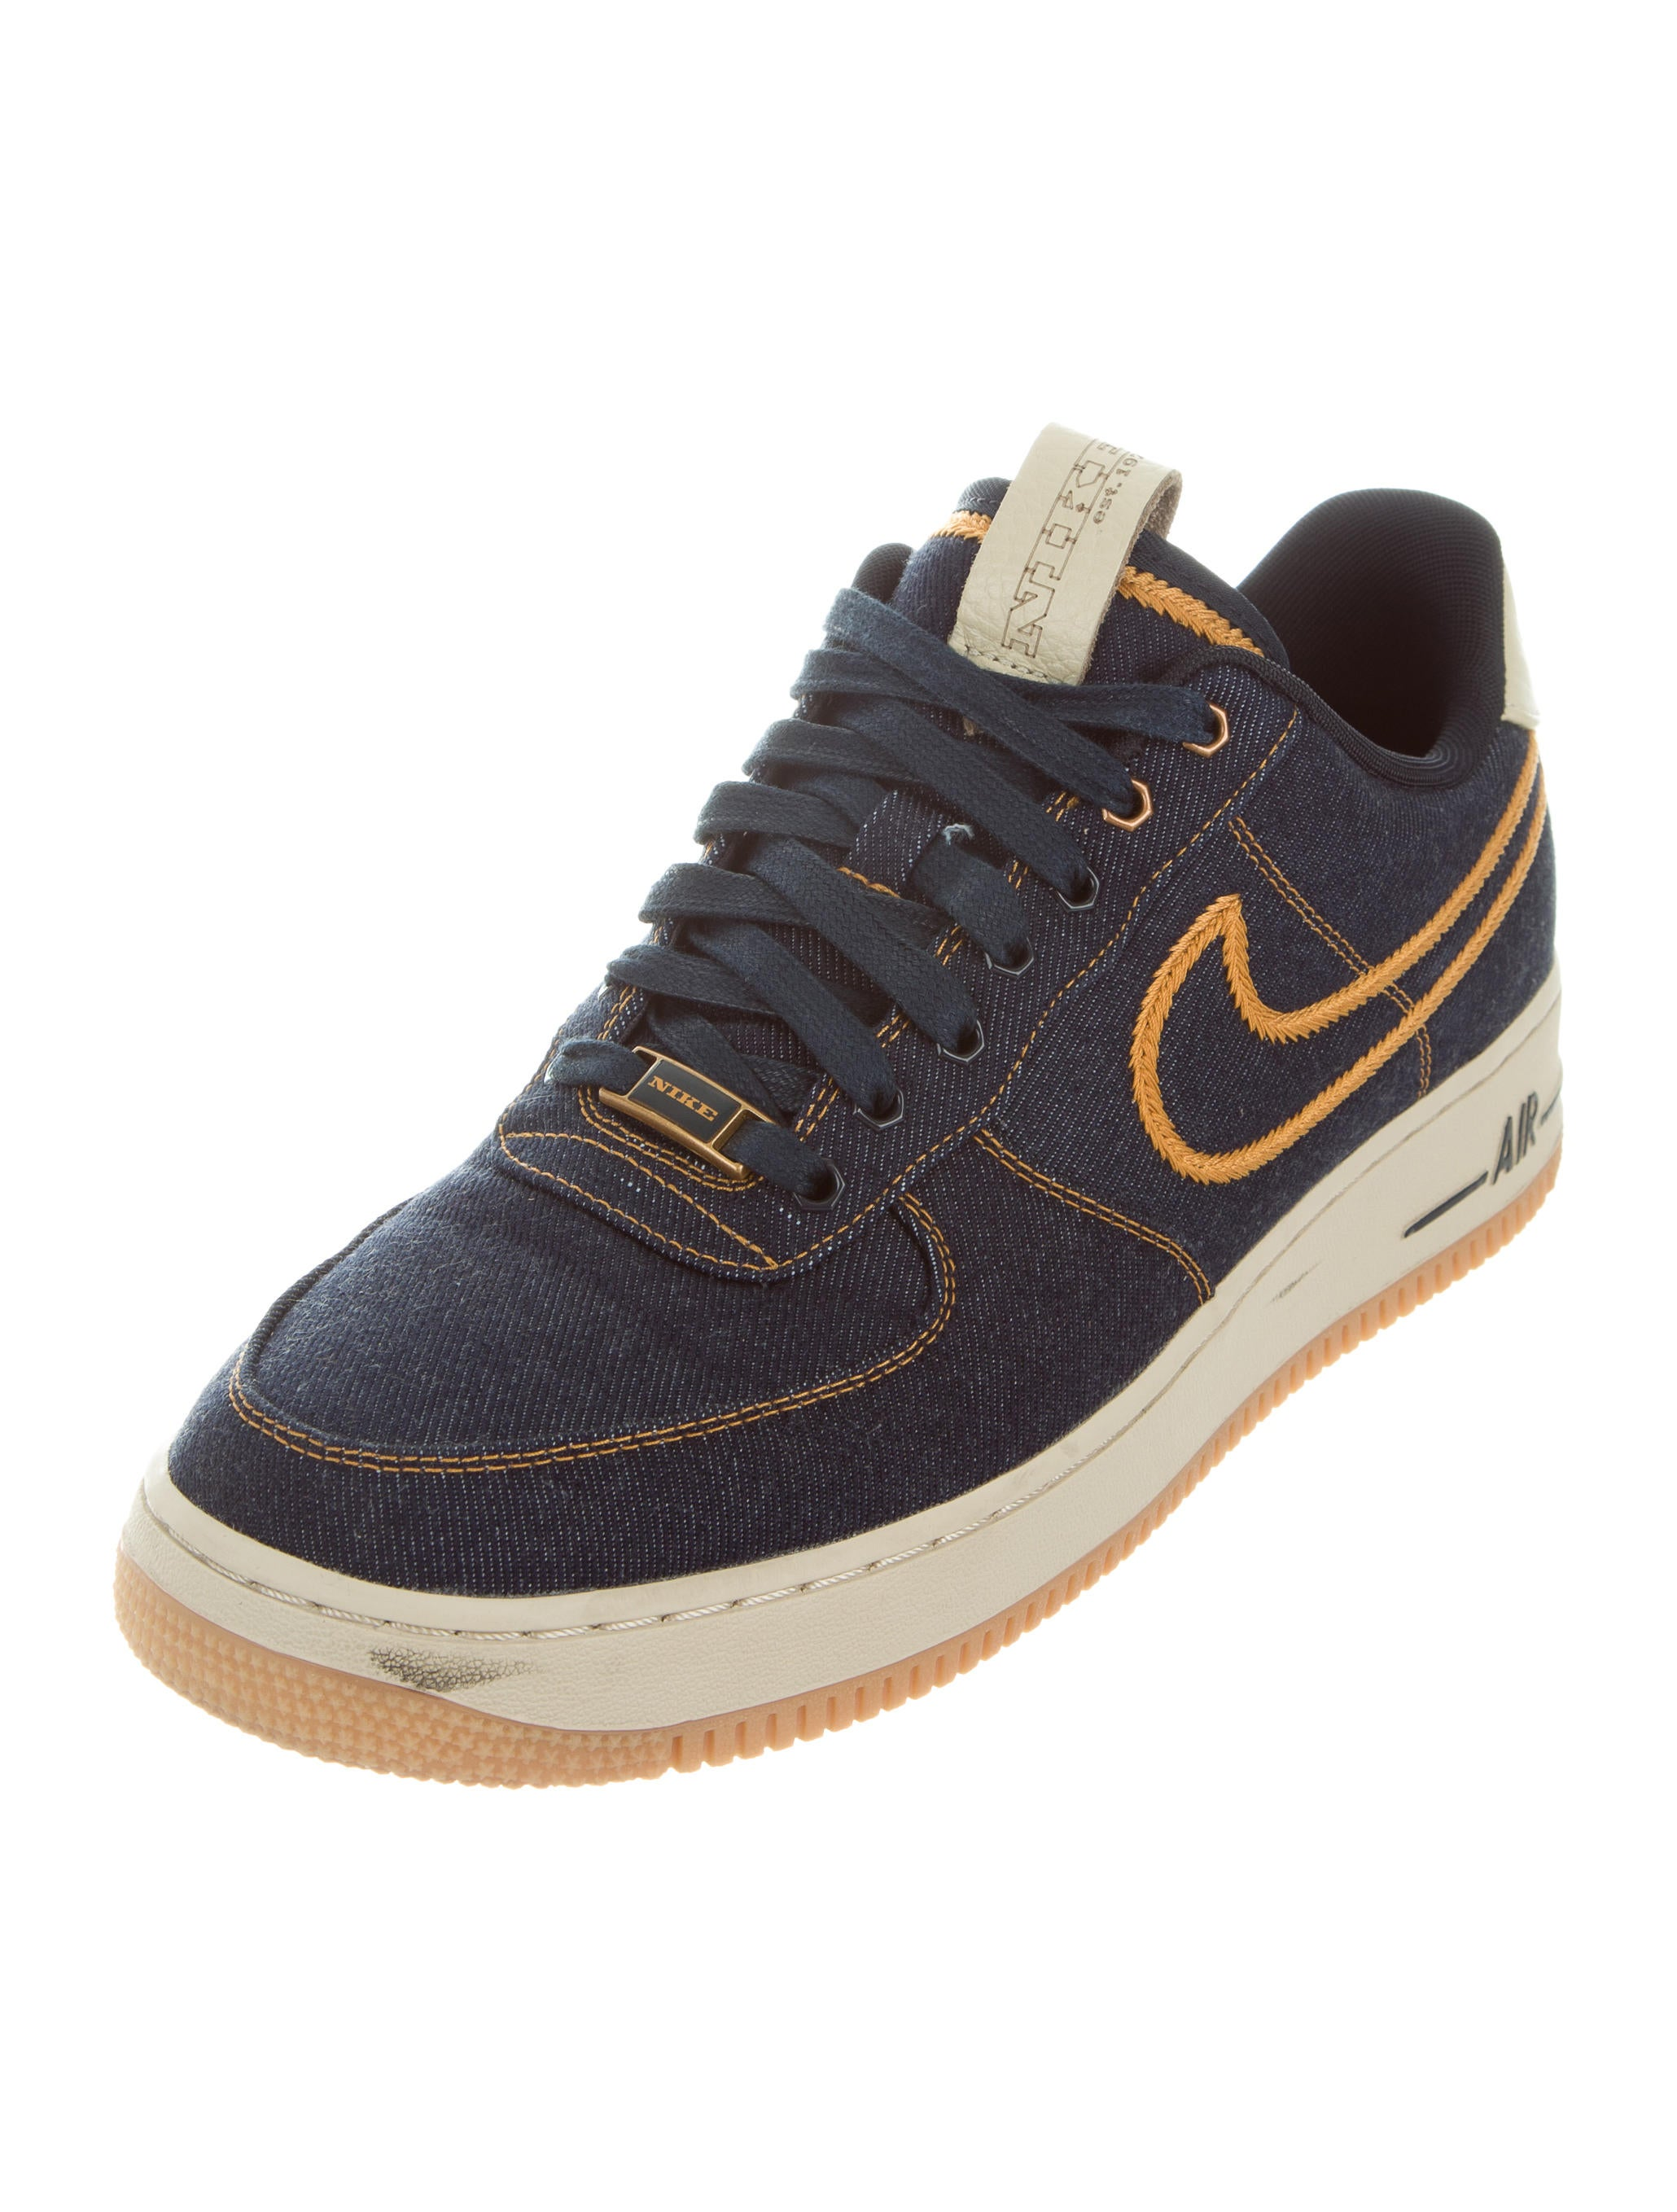 finest selection b4d15 b6cb0 store nike air force 1 ultraforce leather knife c225e 18b0a